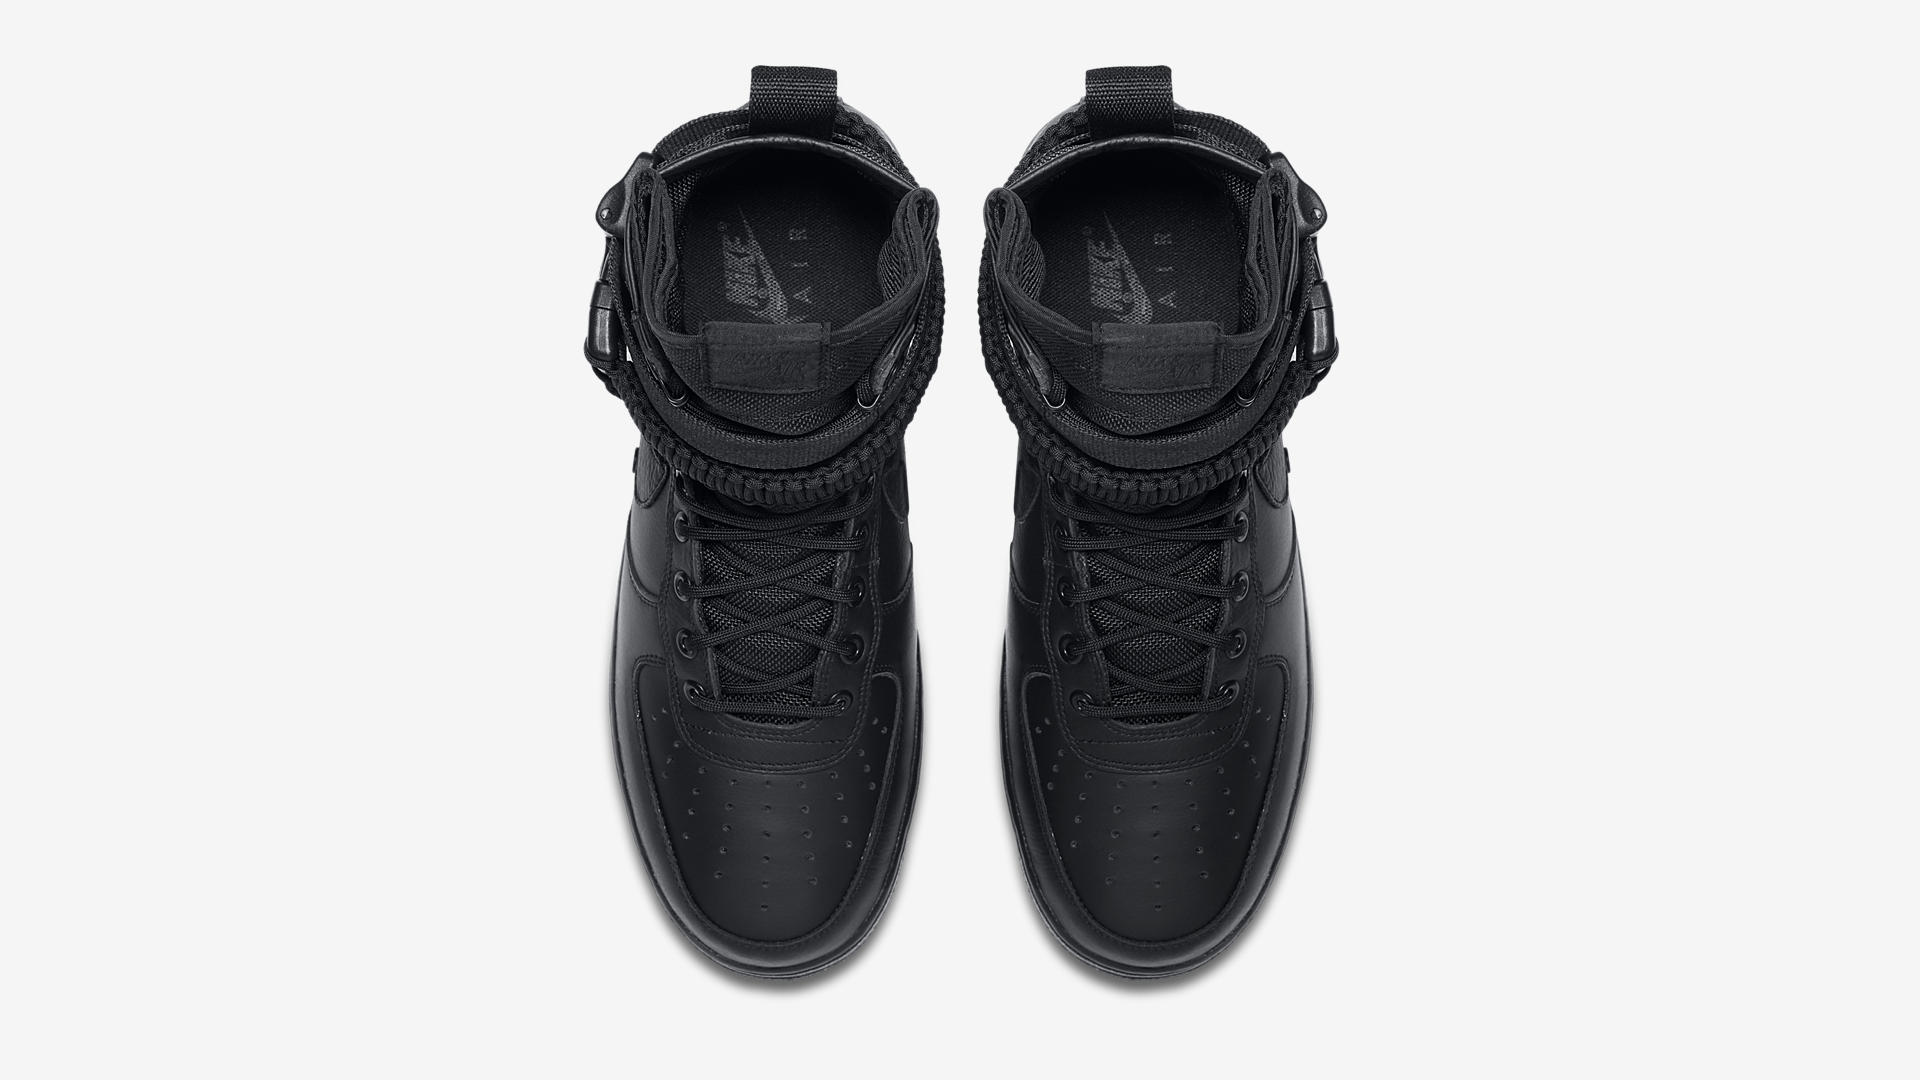 864024 003 Nike SF Air Force 1 Triple Black 3